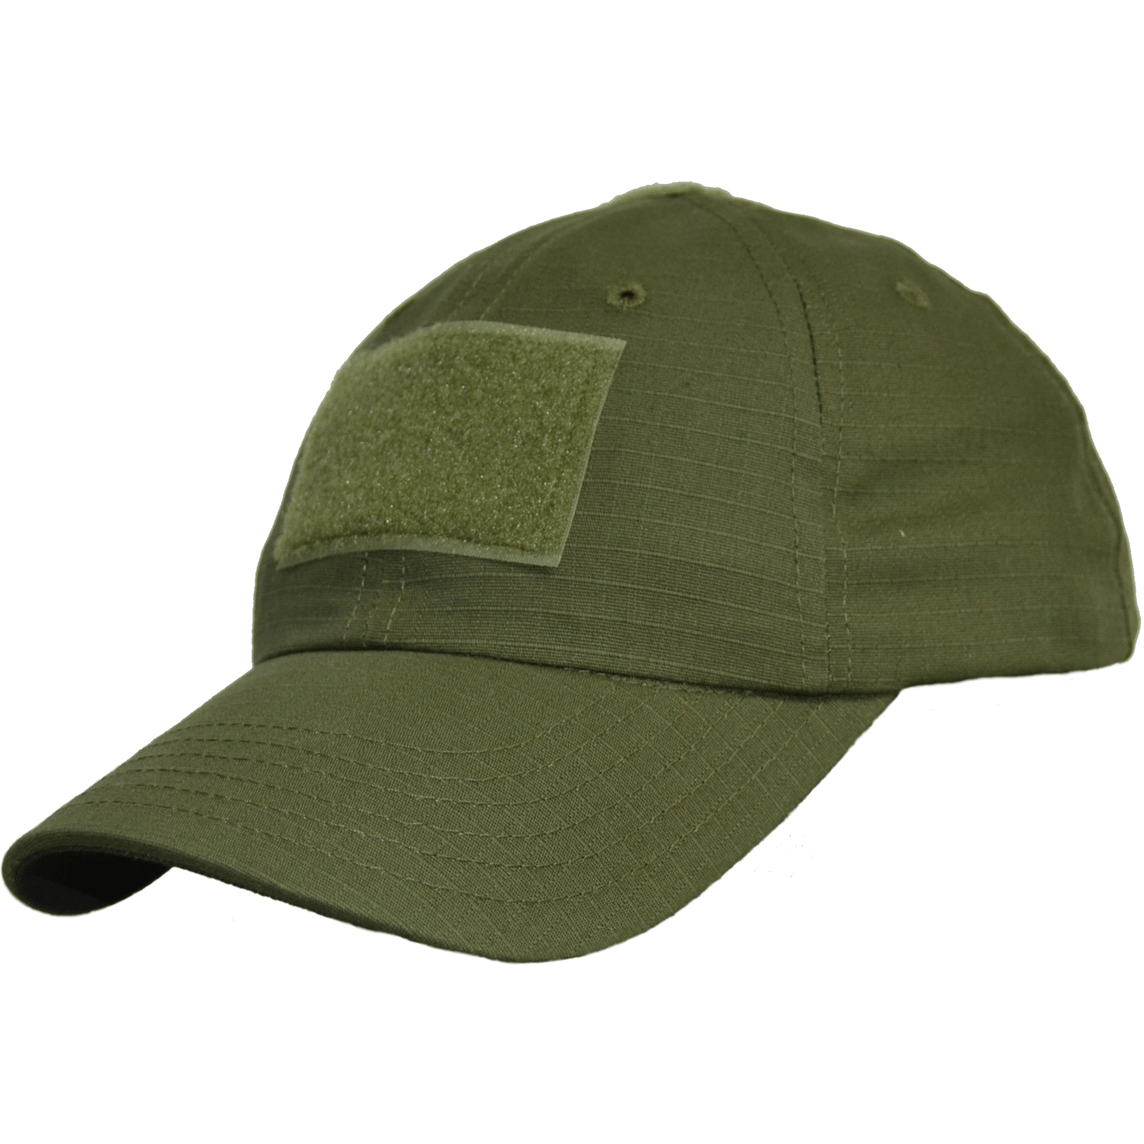 Tactical Gear Junkie Apparel Olive Drab Tactical Gear Junkie American Made Tactical Operator Hat